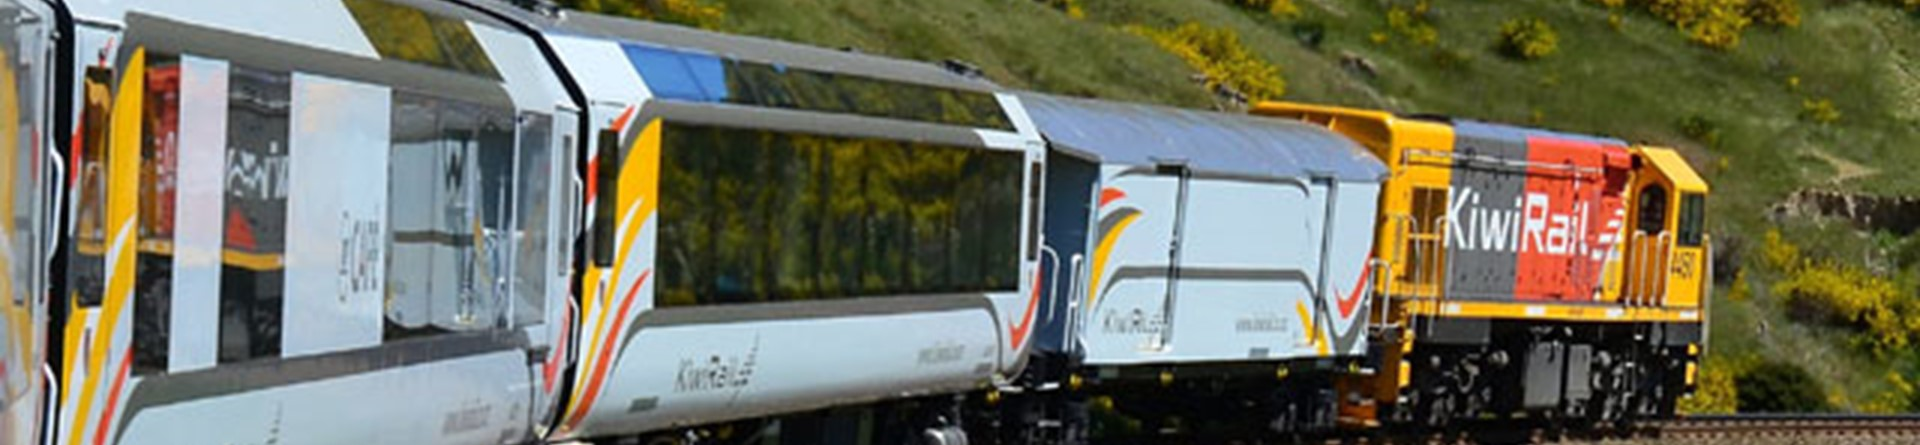 Kiwirail train, New Zealand